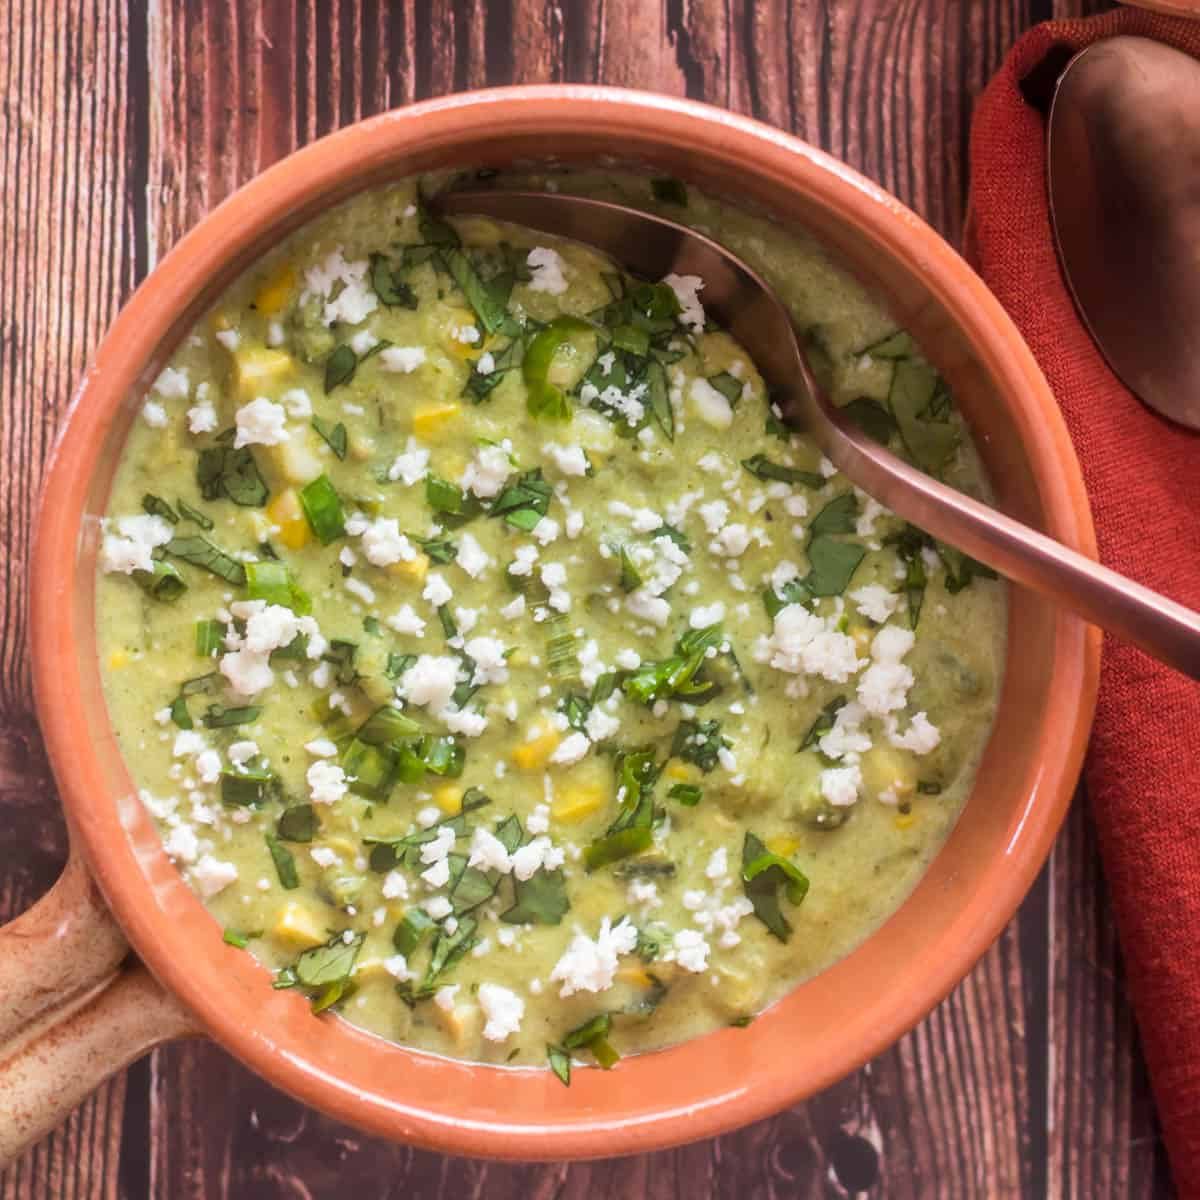 Creamy Corn and Green Chile Chowder in an earthenware bowl on a wood background with a copper spoon.